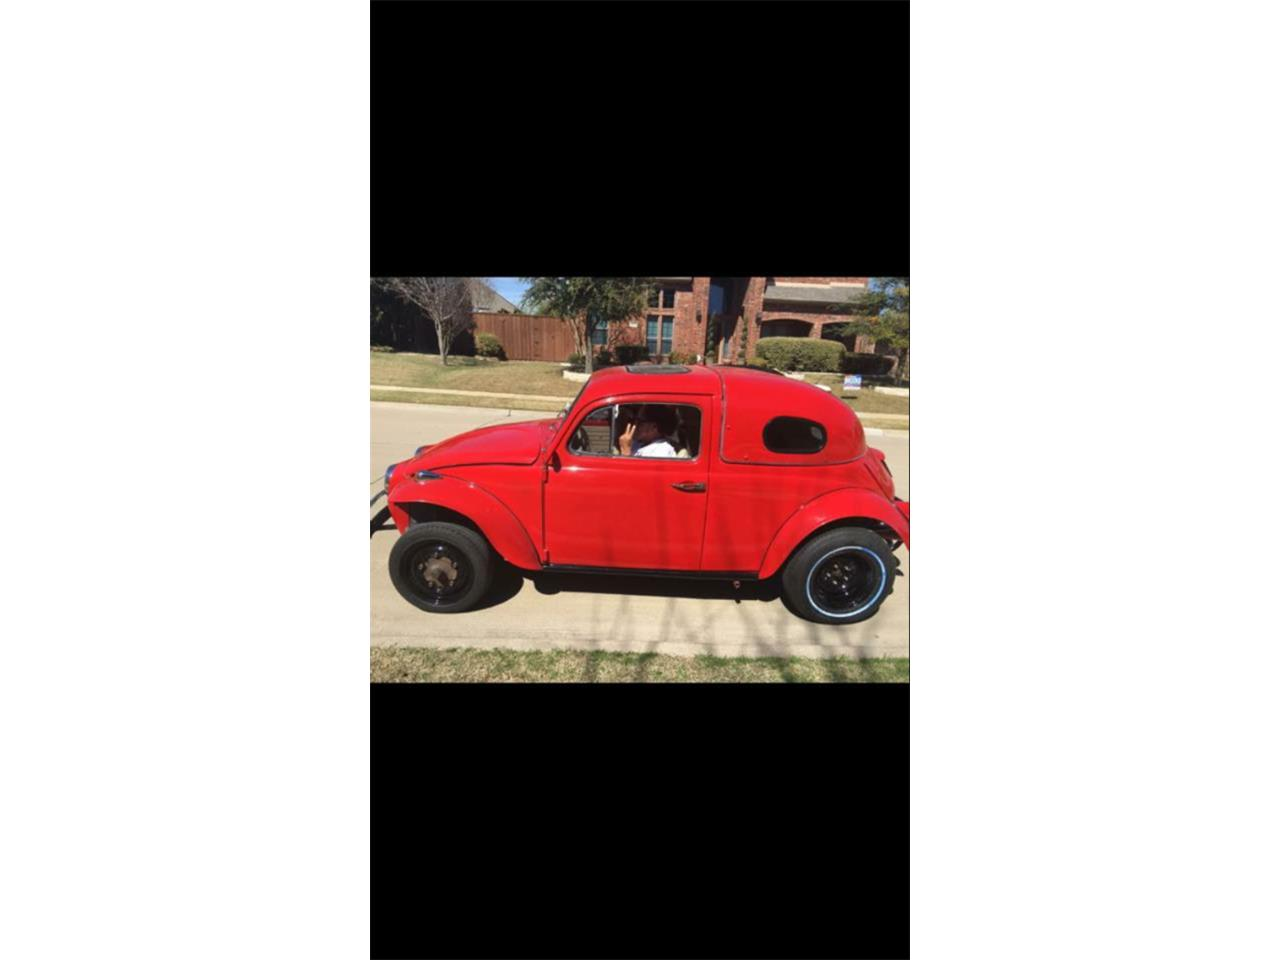 Large Picture of Classic '62 Baha Beetle located in Punta Gorda Florida Auction Vehicle - NRPQ